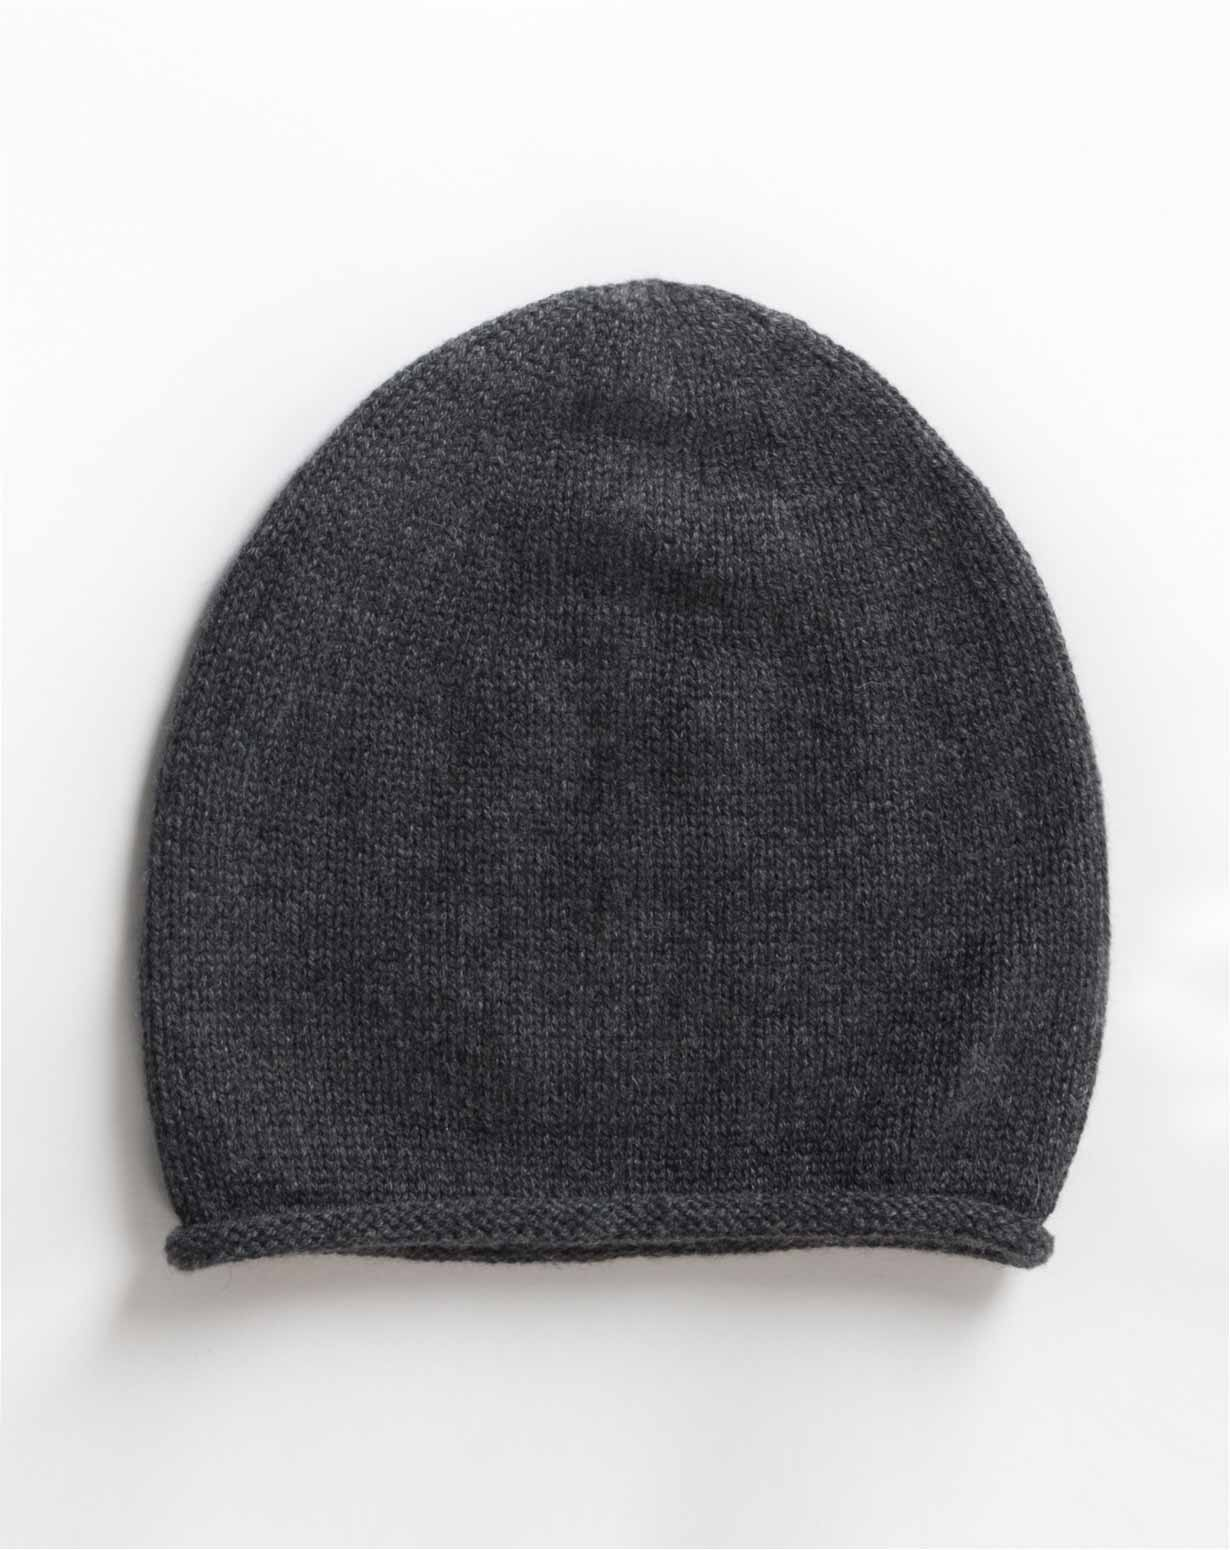 798a2cbbd15b1 MEN S CLASSIC WOOL BEANIE. MEN'S DESIGNER HATS